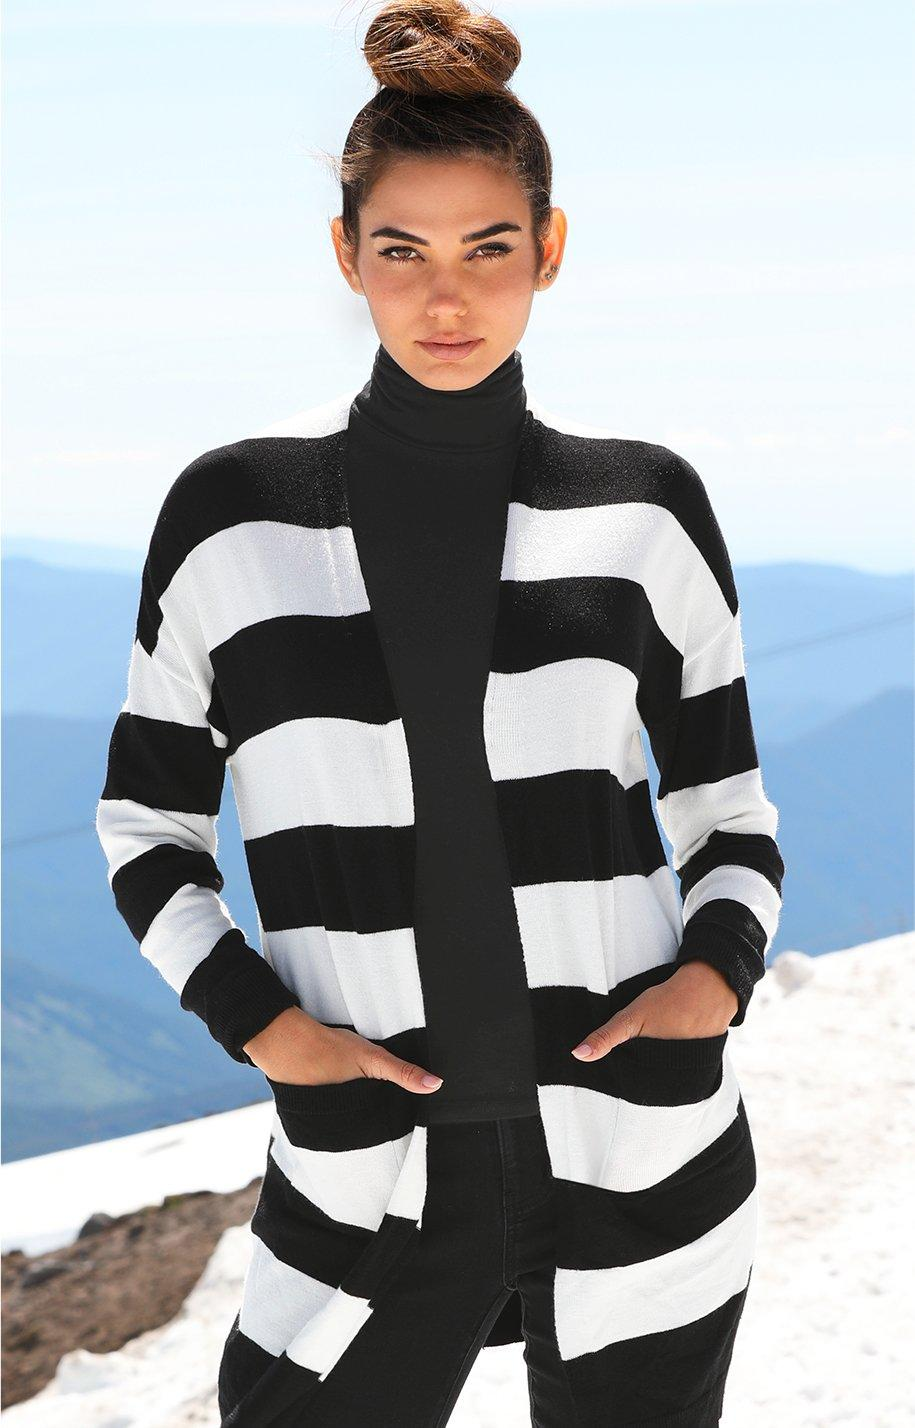 model wearing a black and white striped cardigan over a black turtleneck